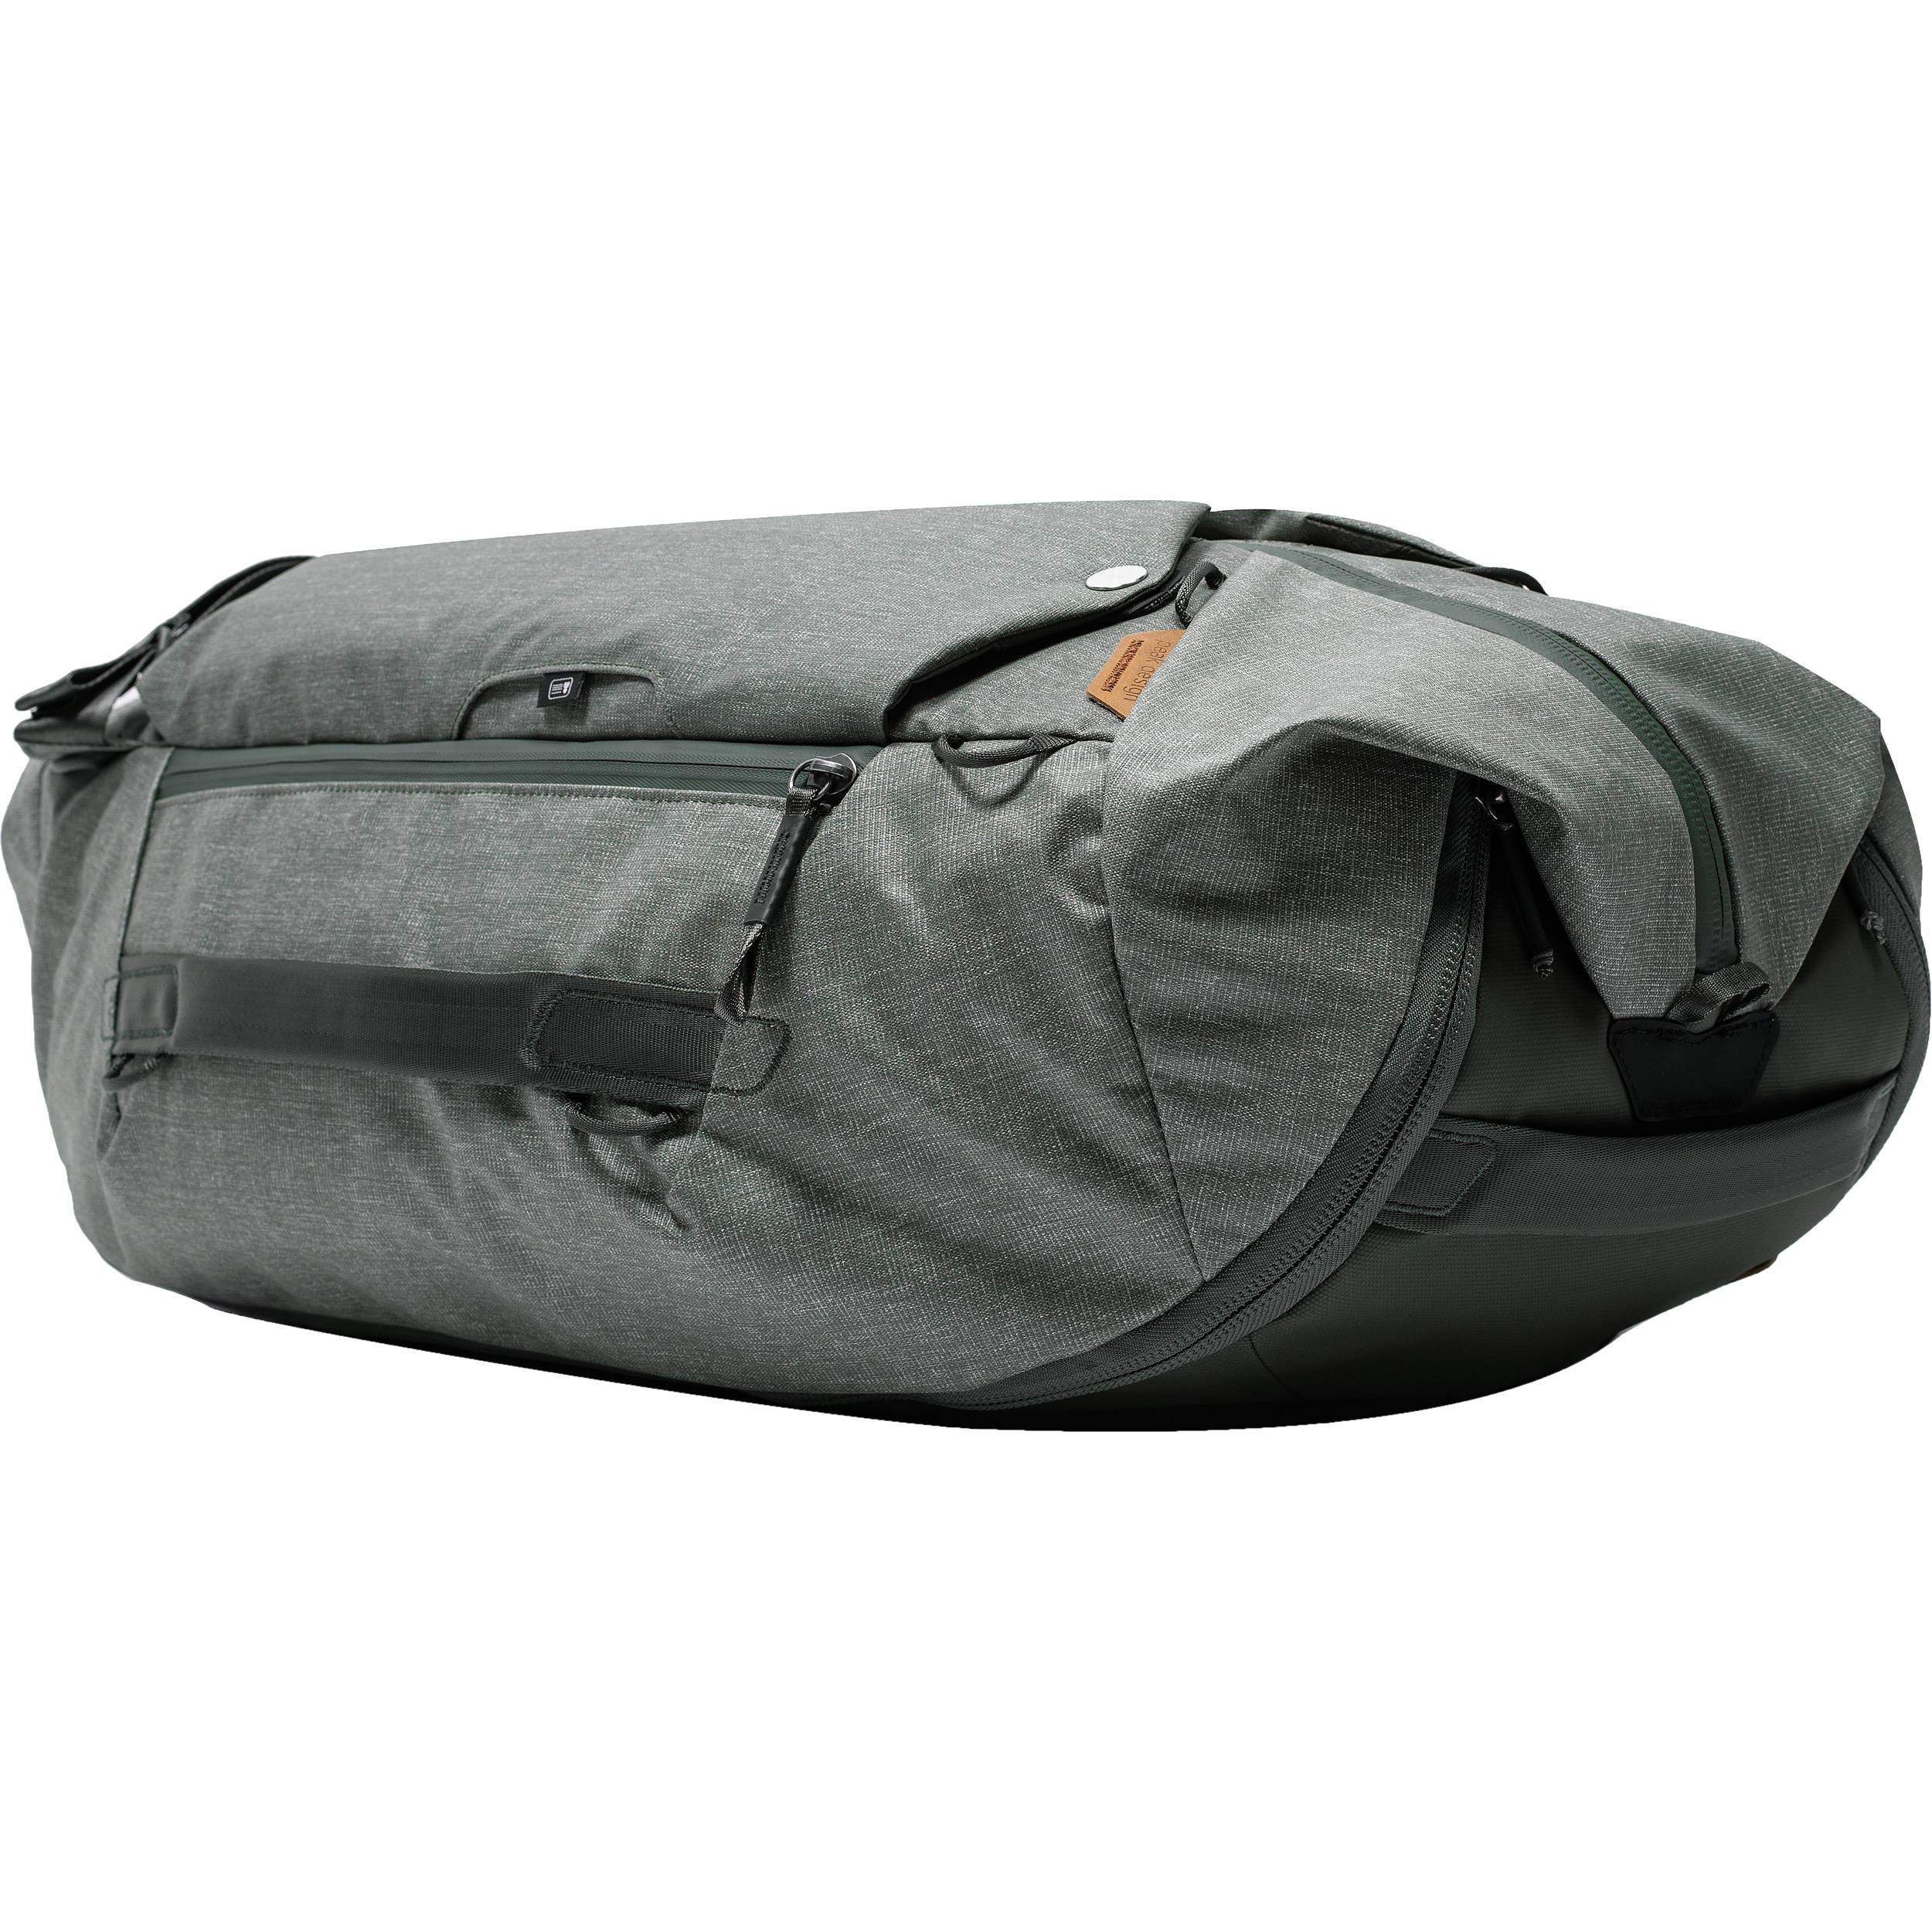 Image of Peak Design - Travel Duffel - 65L - Sage